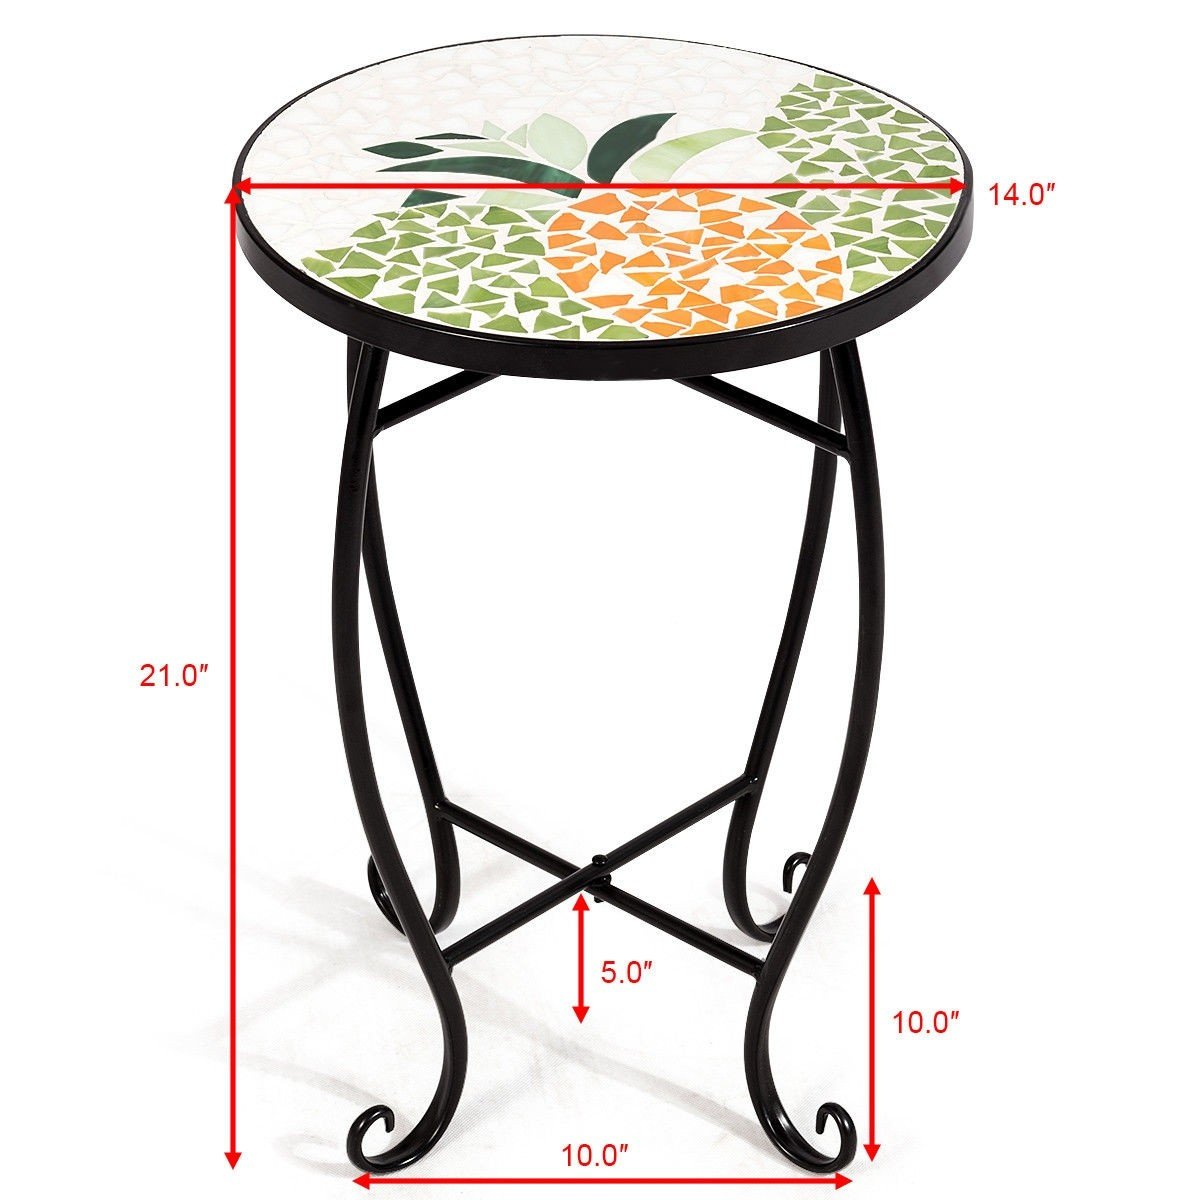 custpromo mosaic accent table metal round side indoor plant stand cobalt glass top outdoor garden patio sweet pineapple kitchen gold coloured lamps vita copenhagen white porcelain